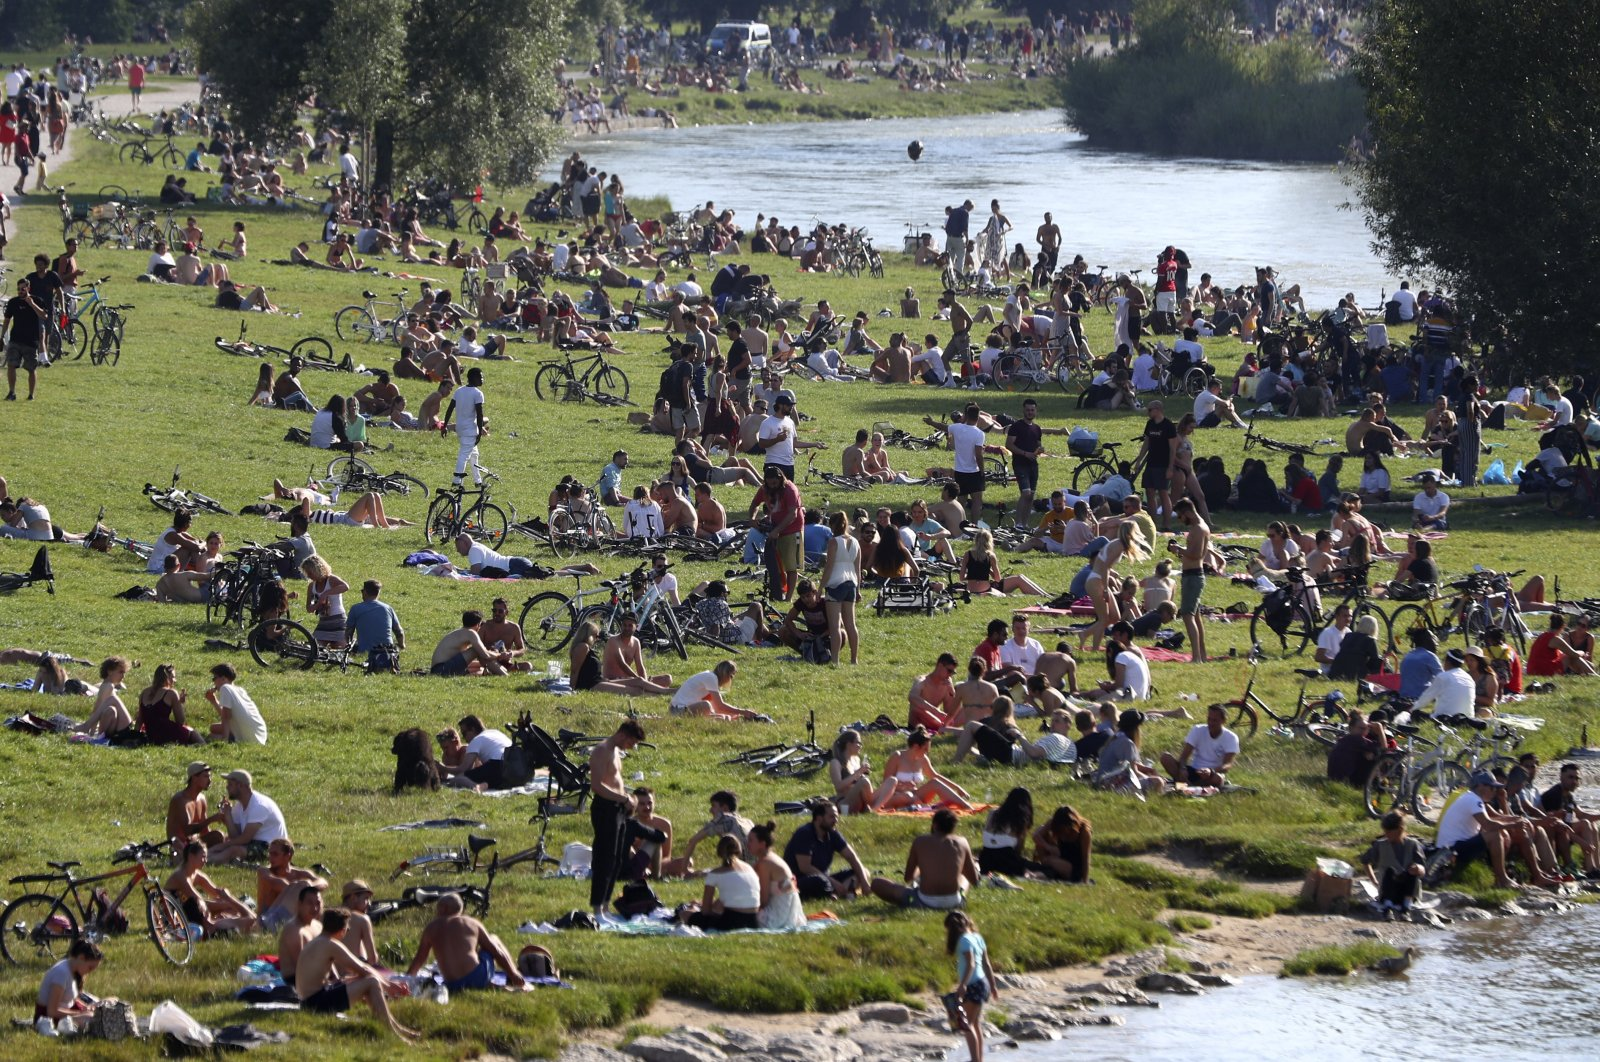 Thousands of people enjoy the summer weather on the banks of the Isar river in Munich, Germany, July 19, 2020. (AP Photo)